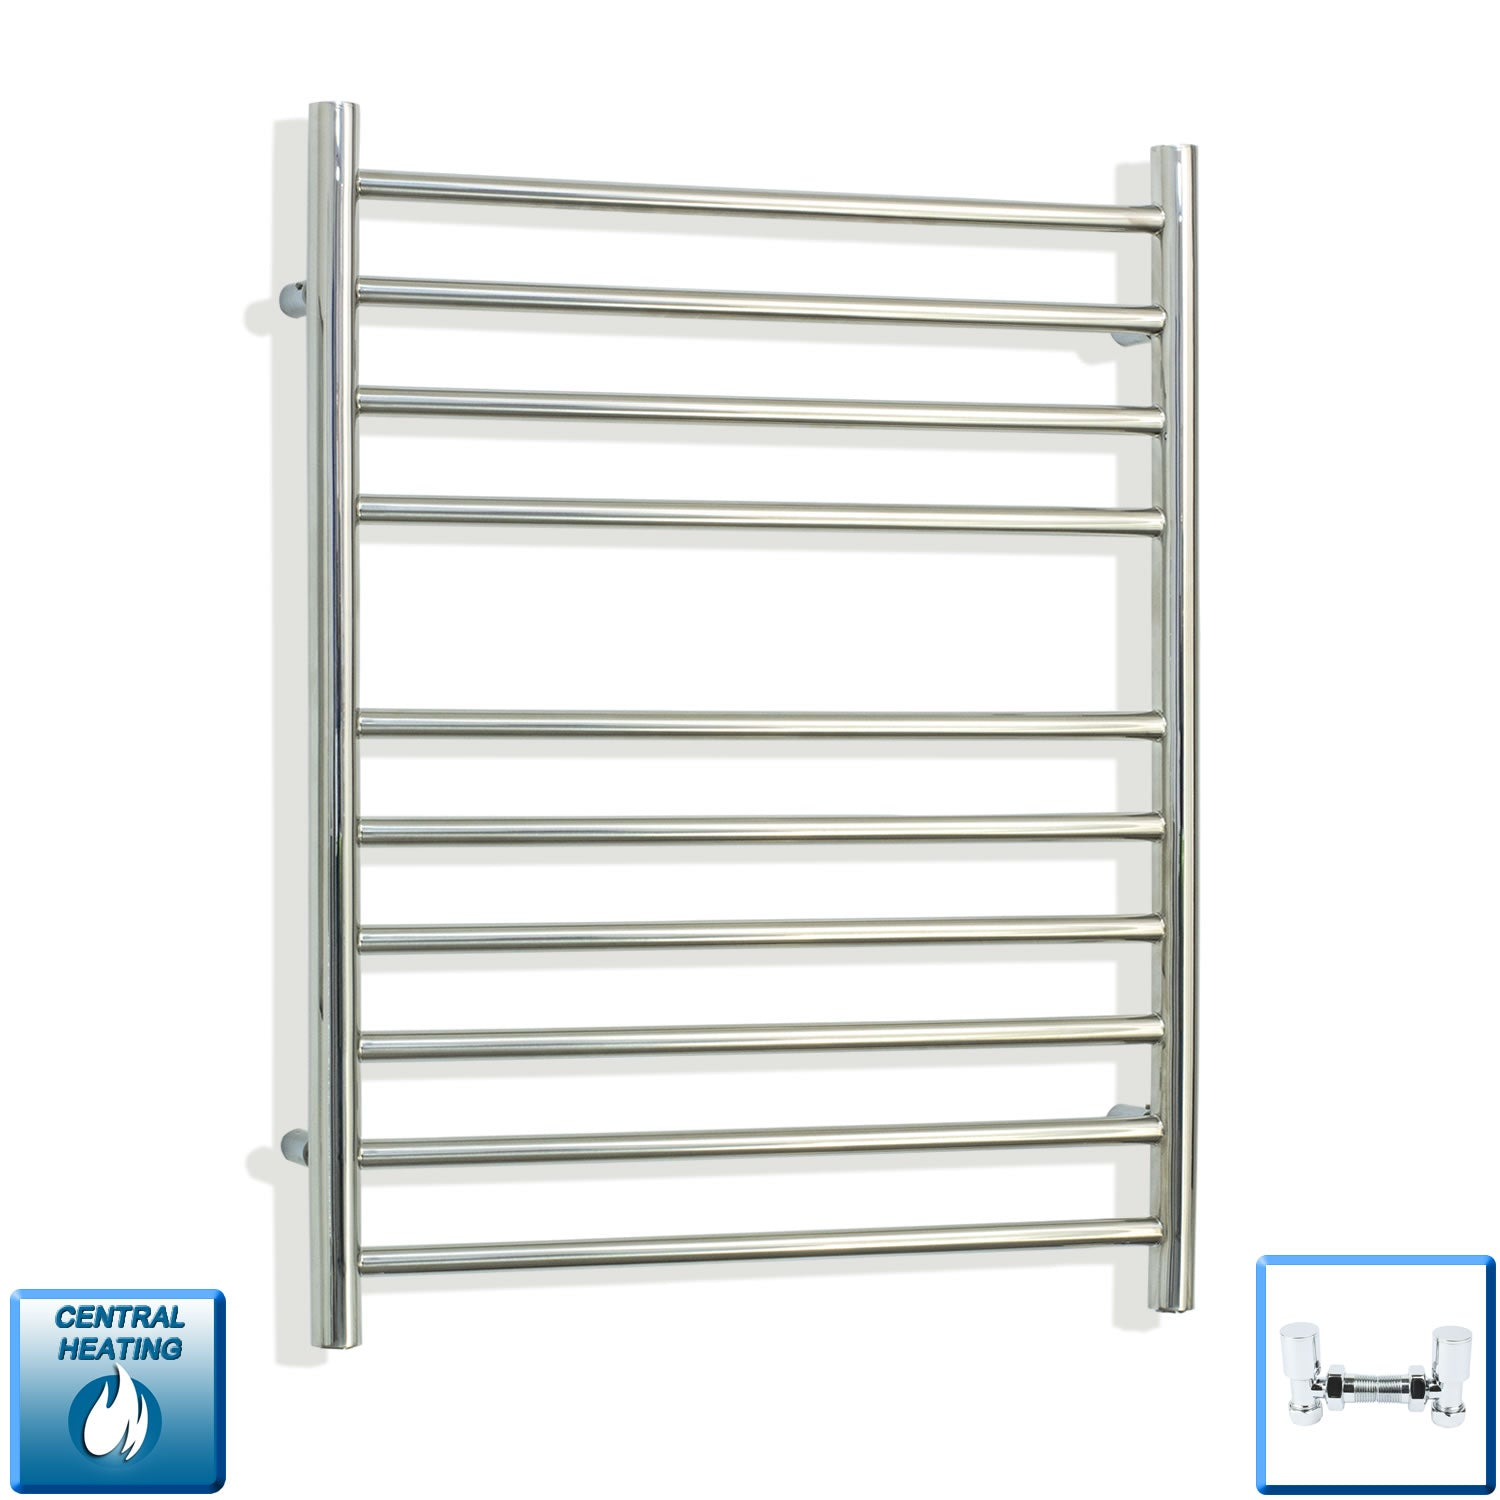 750 x 500 stainless steel towel rail radiator with angled valves pipes out of the wall